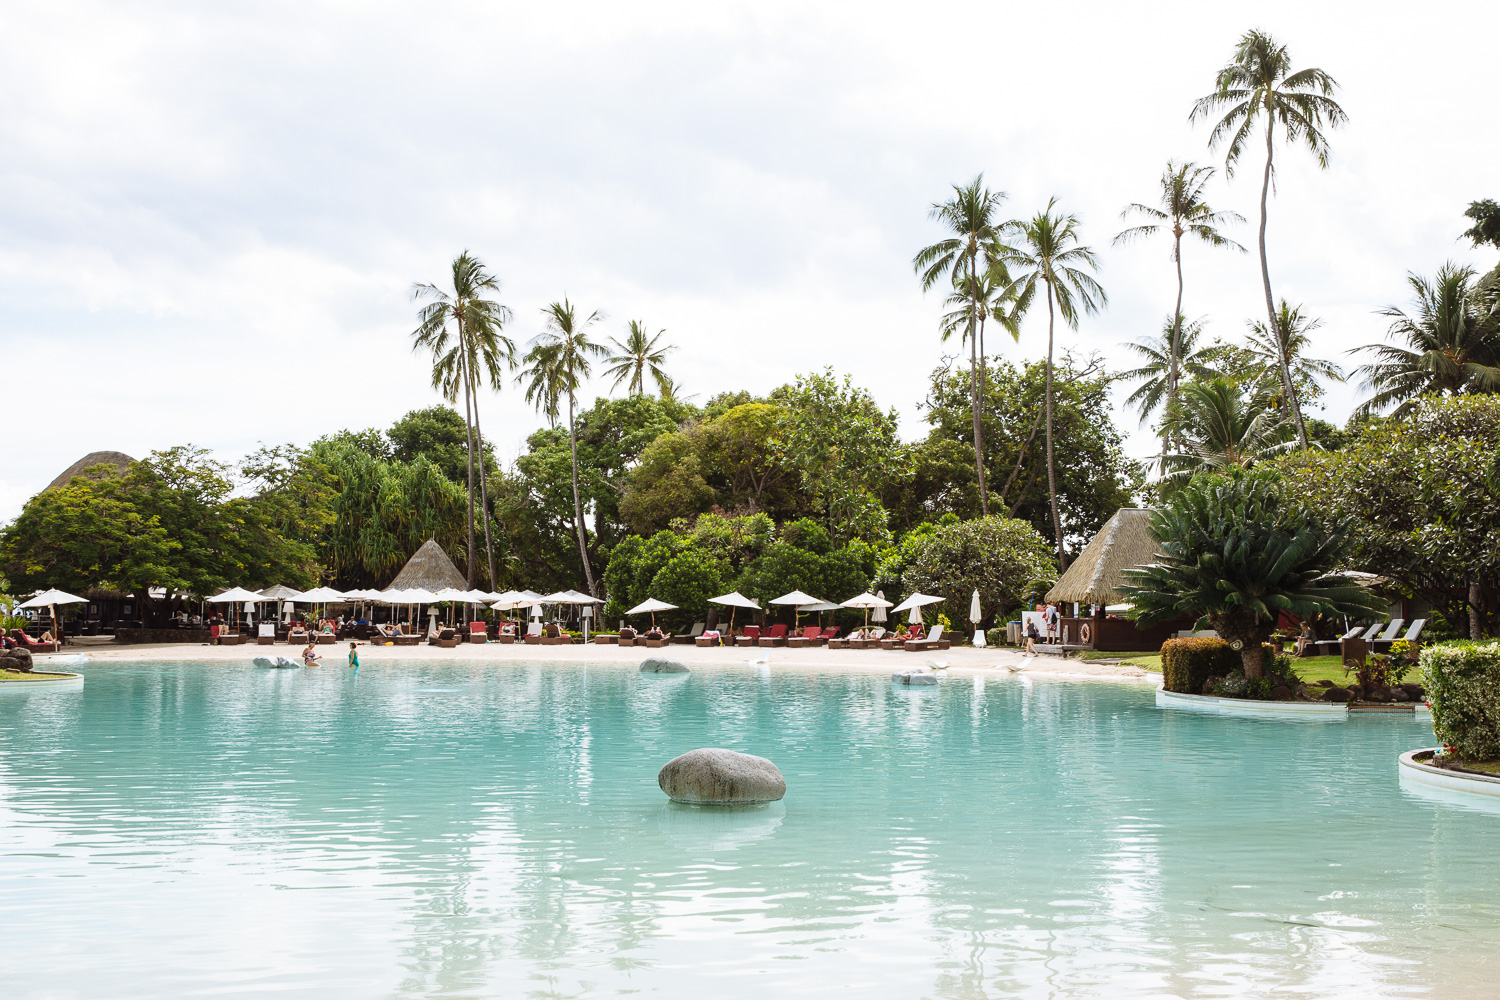 Poolside at Le Meridien Tahiti